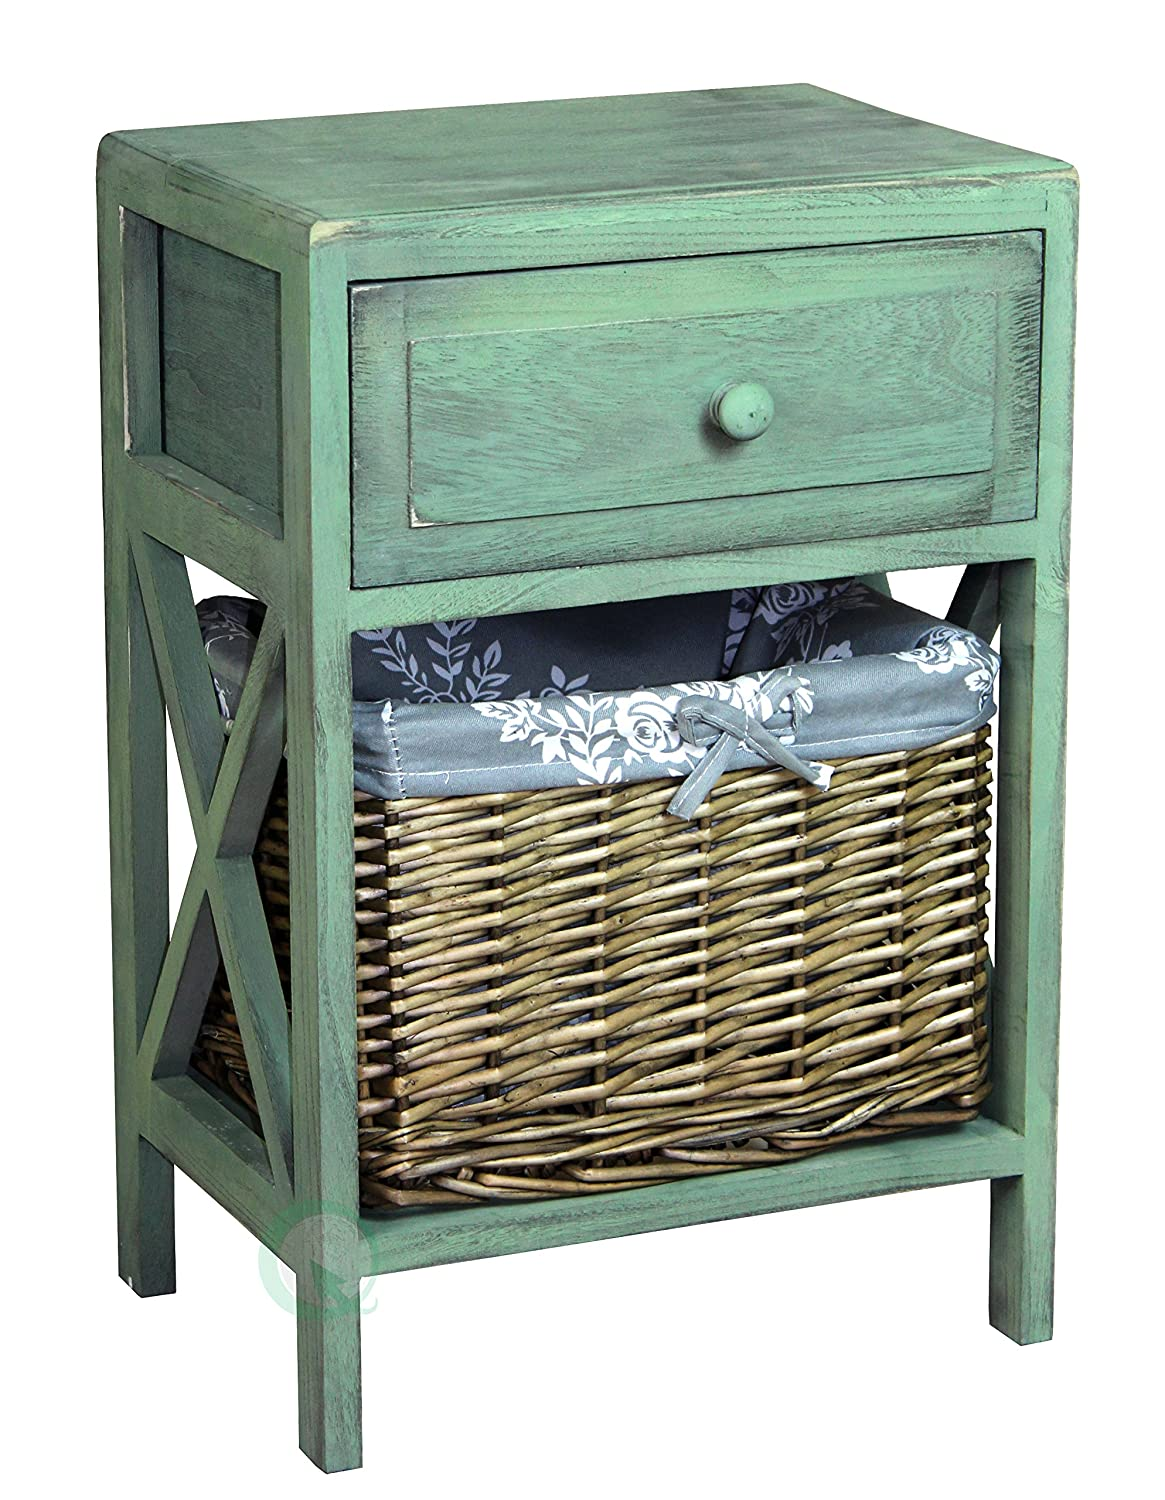 Vintiquewise(TM) Distressed Washed Cabinet Chest with Drawer and Basket Bin